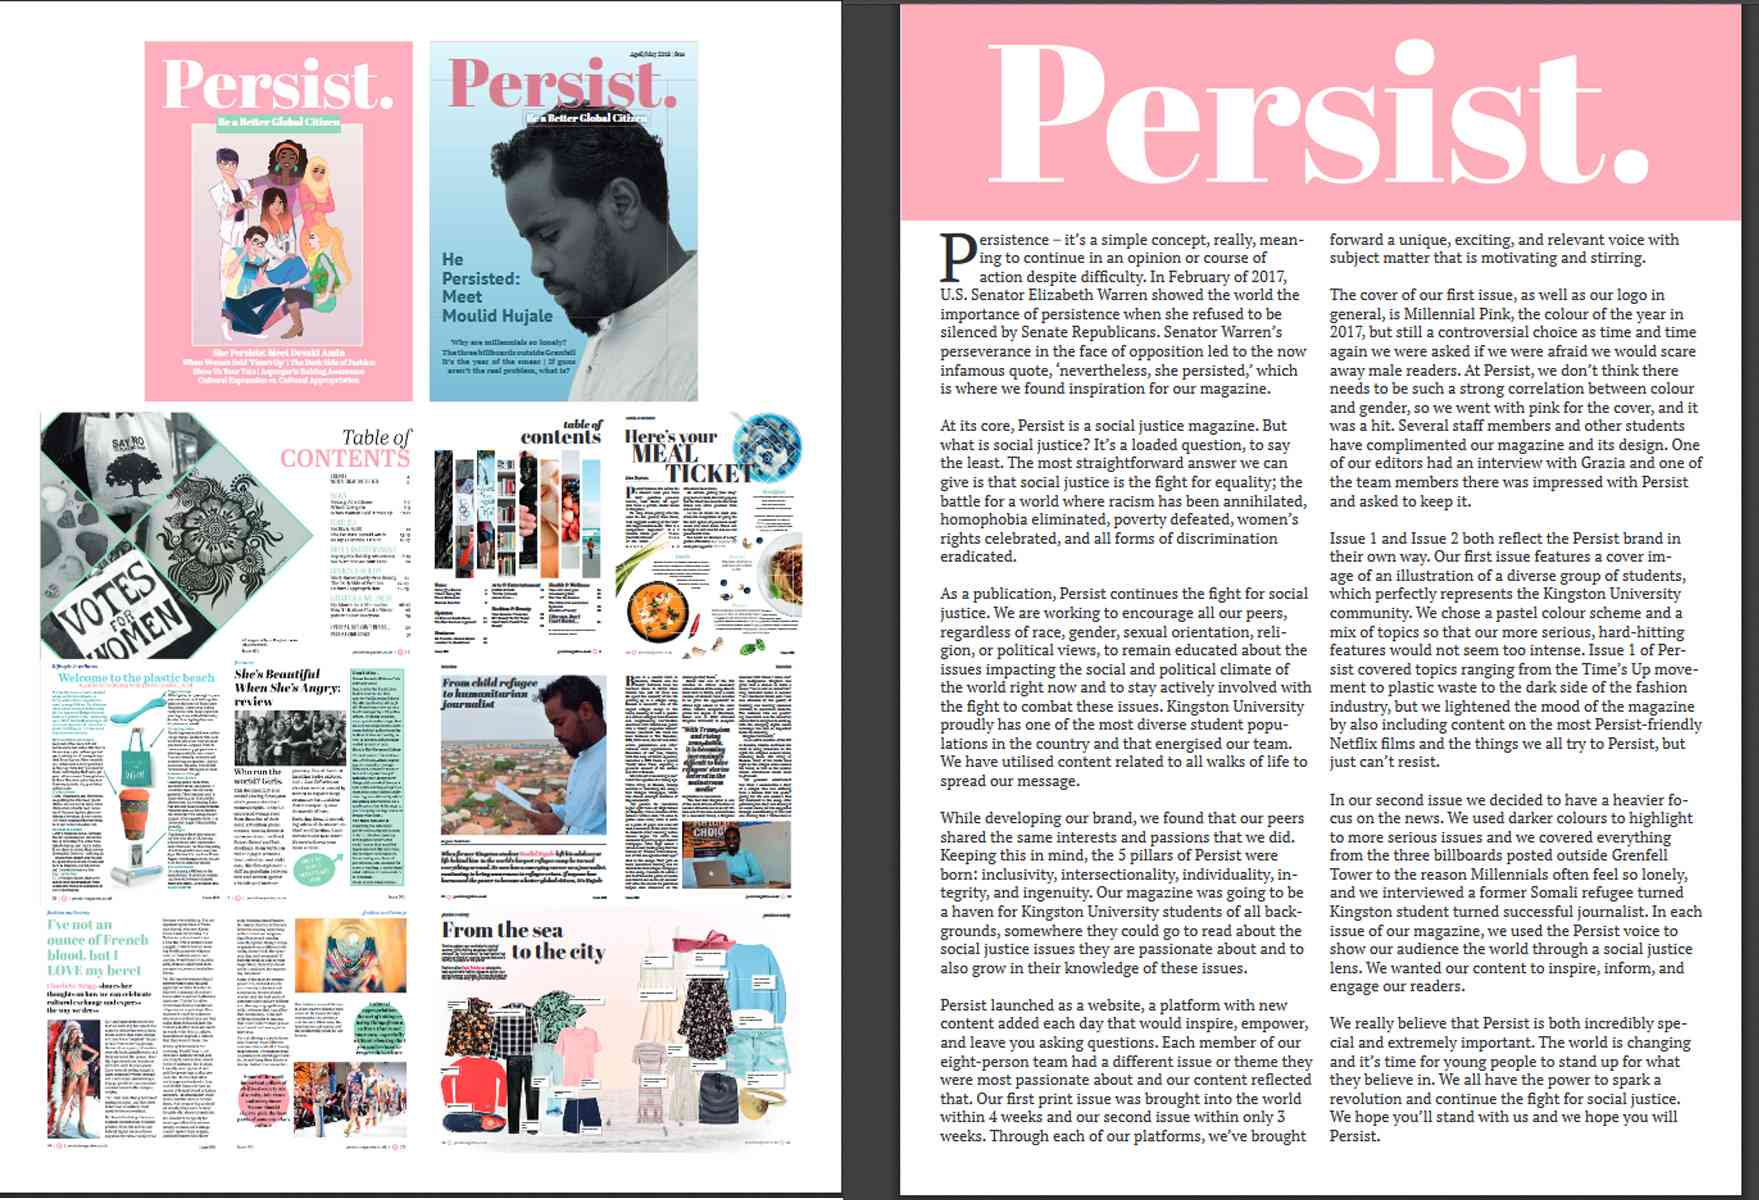 Persist magazine spreads